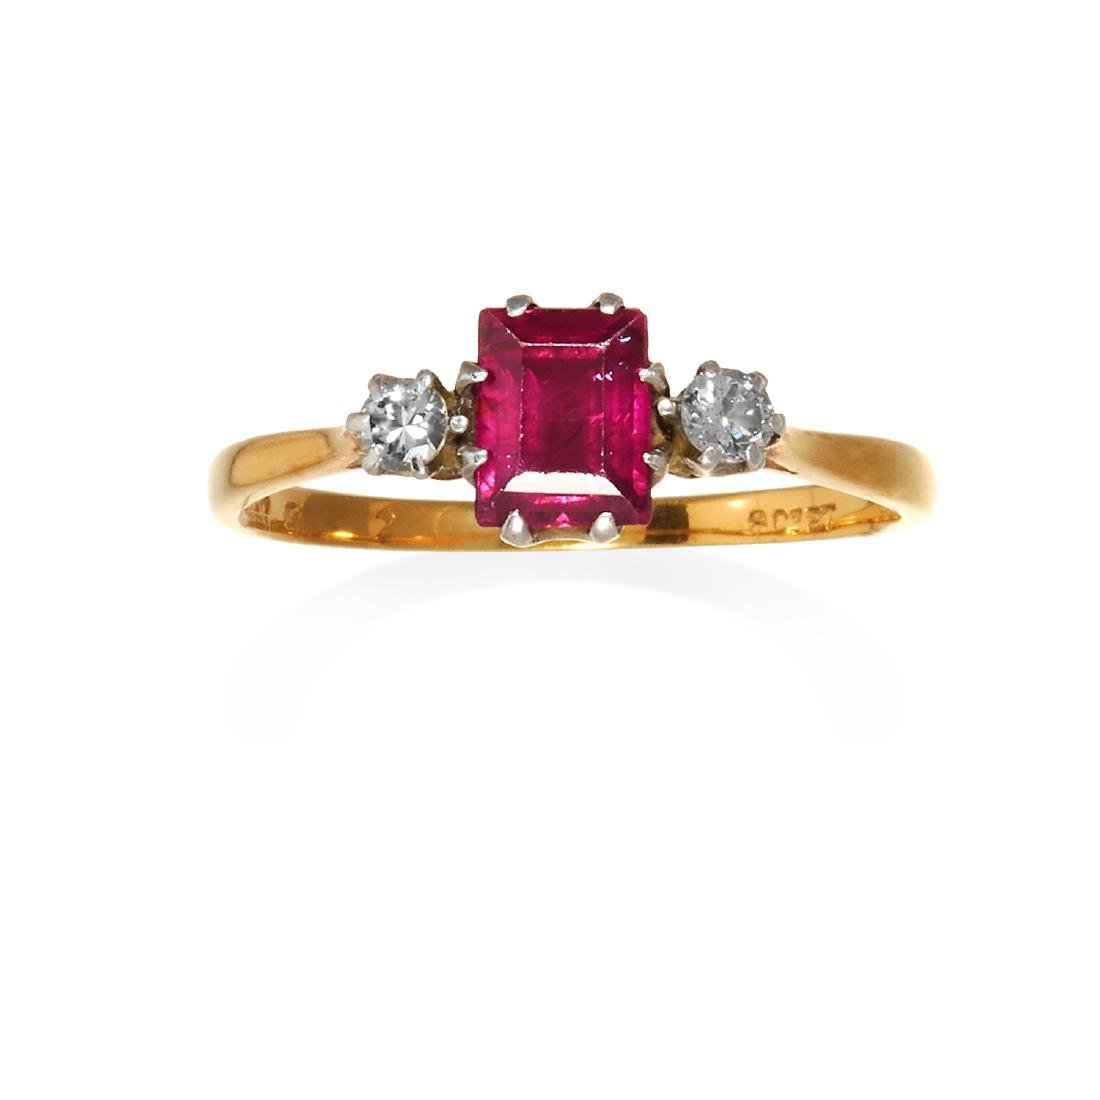 A RUBY AND DIAMOND THREE STONE RING in 18ct yellow gold